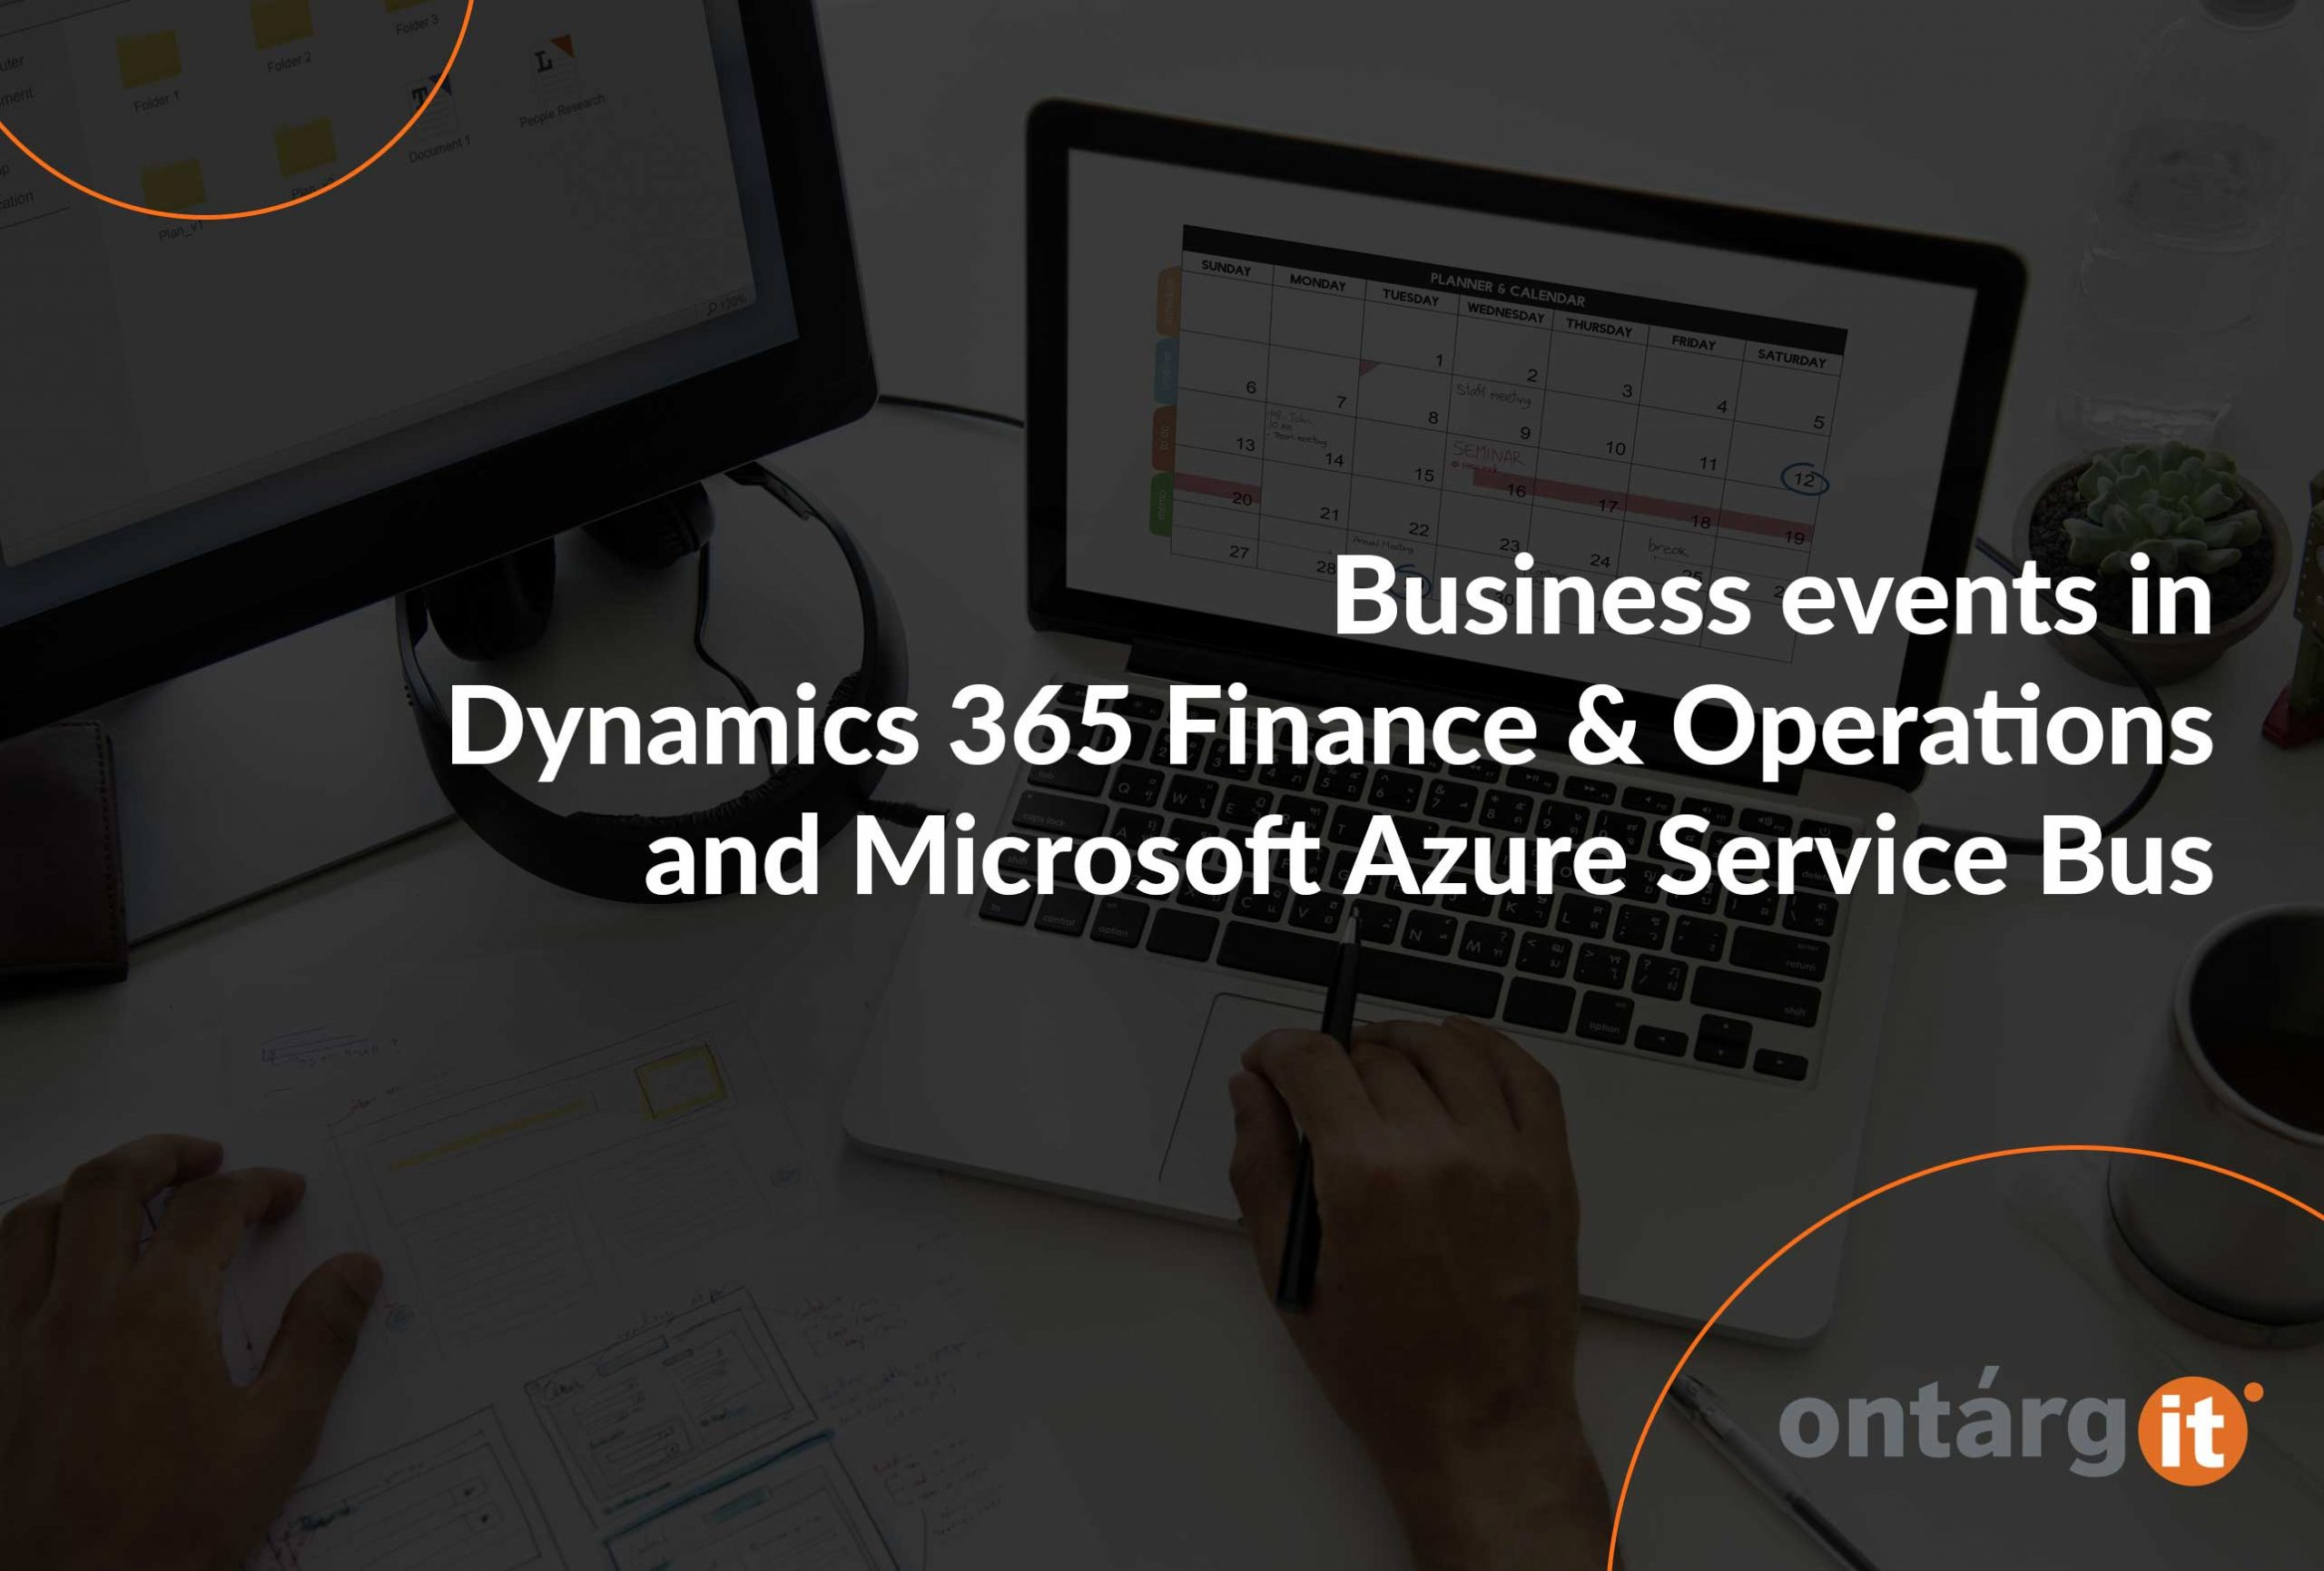 Business-events-in-Dynamics-365-Finance-&-Operations-and-Microsoft-Azure-Service-Bus